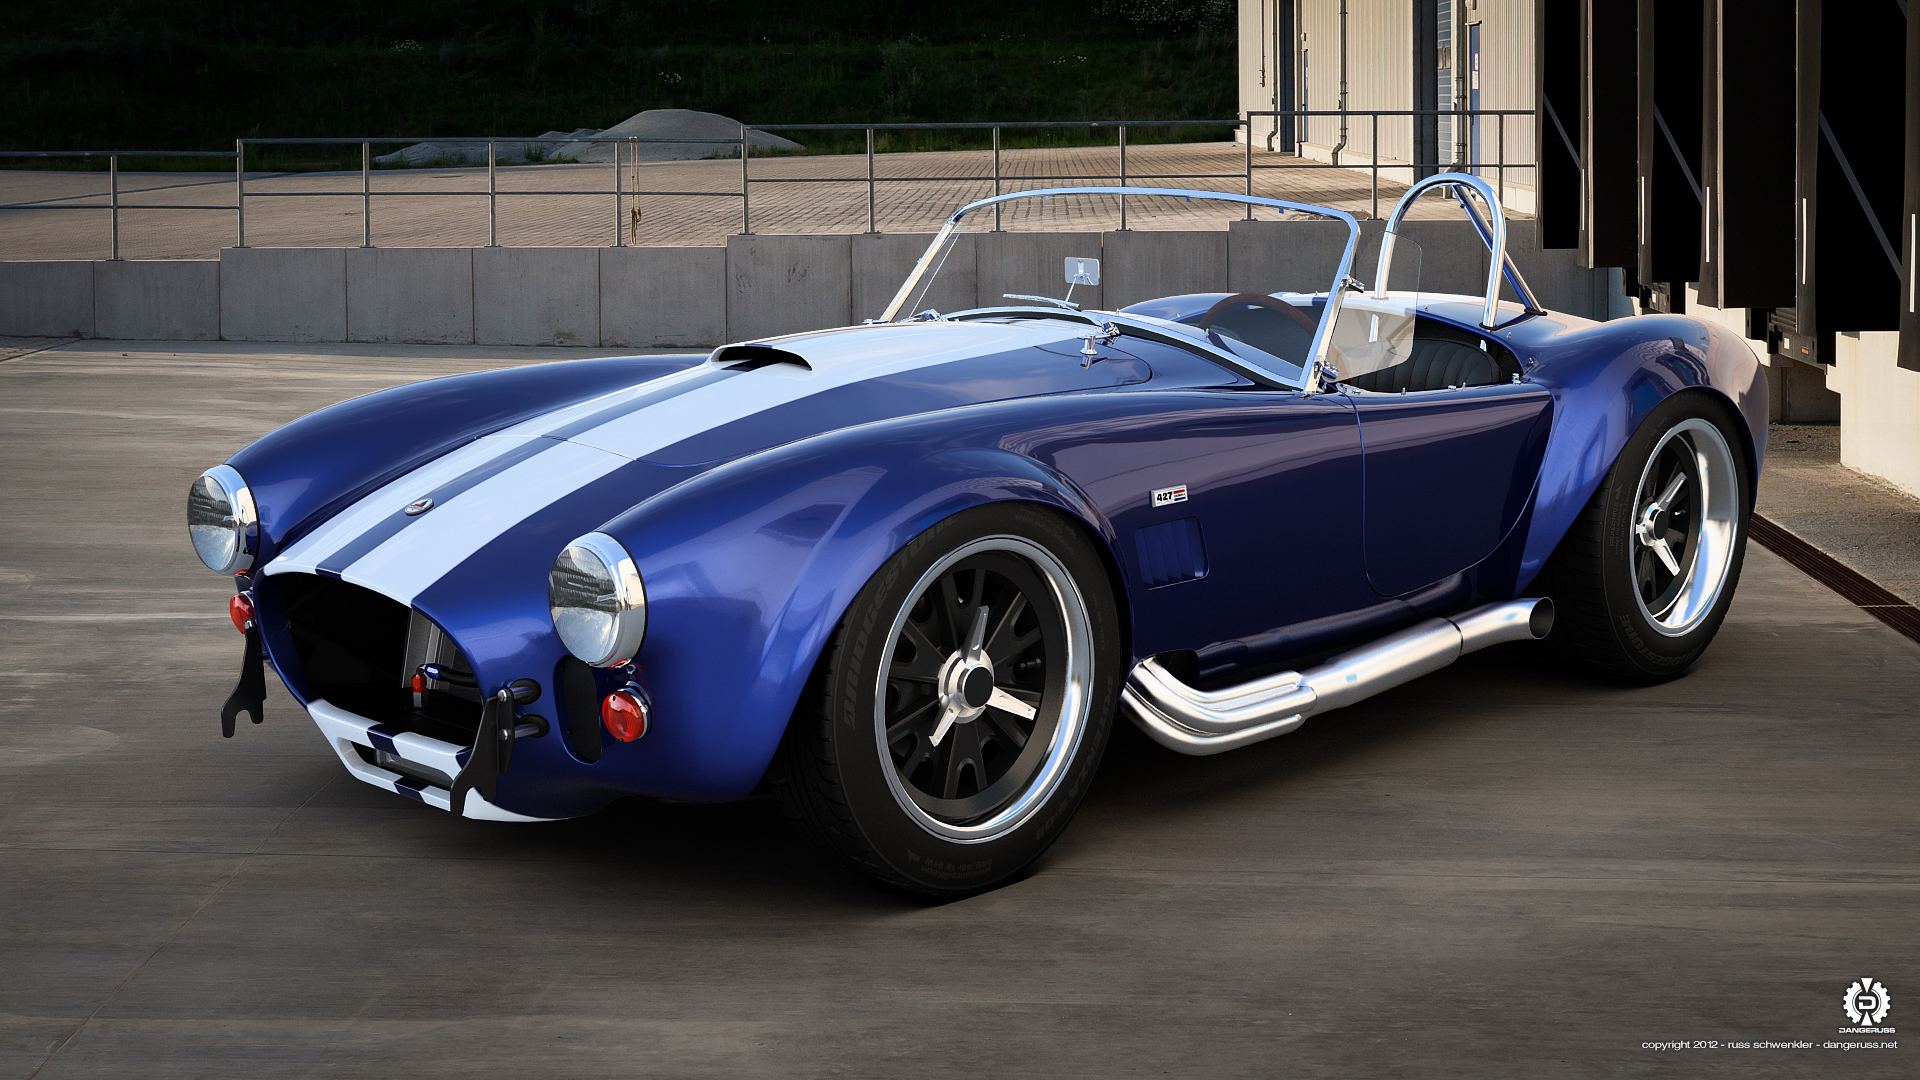 AC Cobra 427, Not Just For Need For Speed Enthusiasts